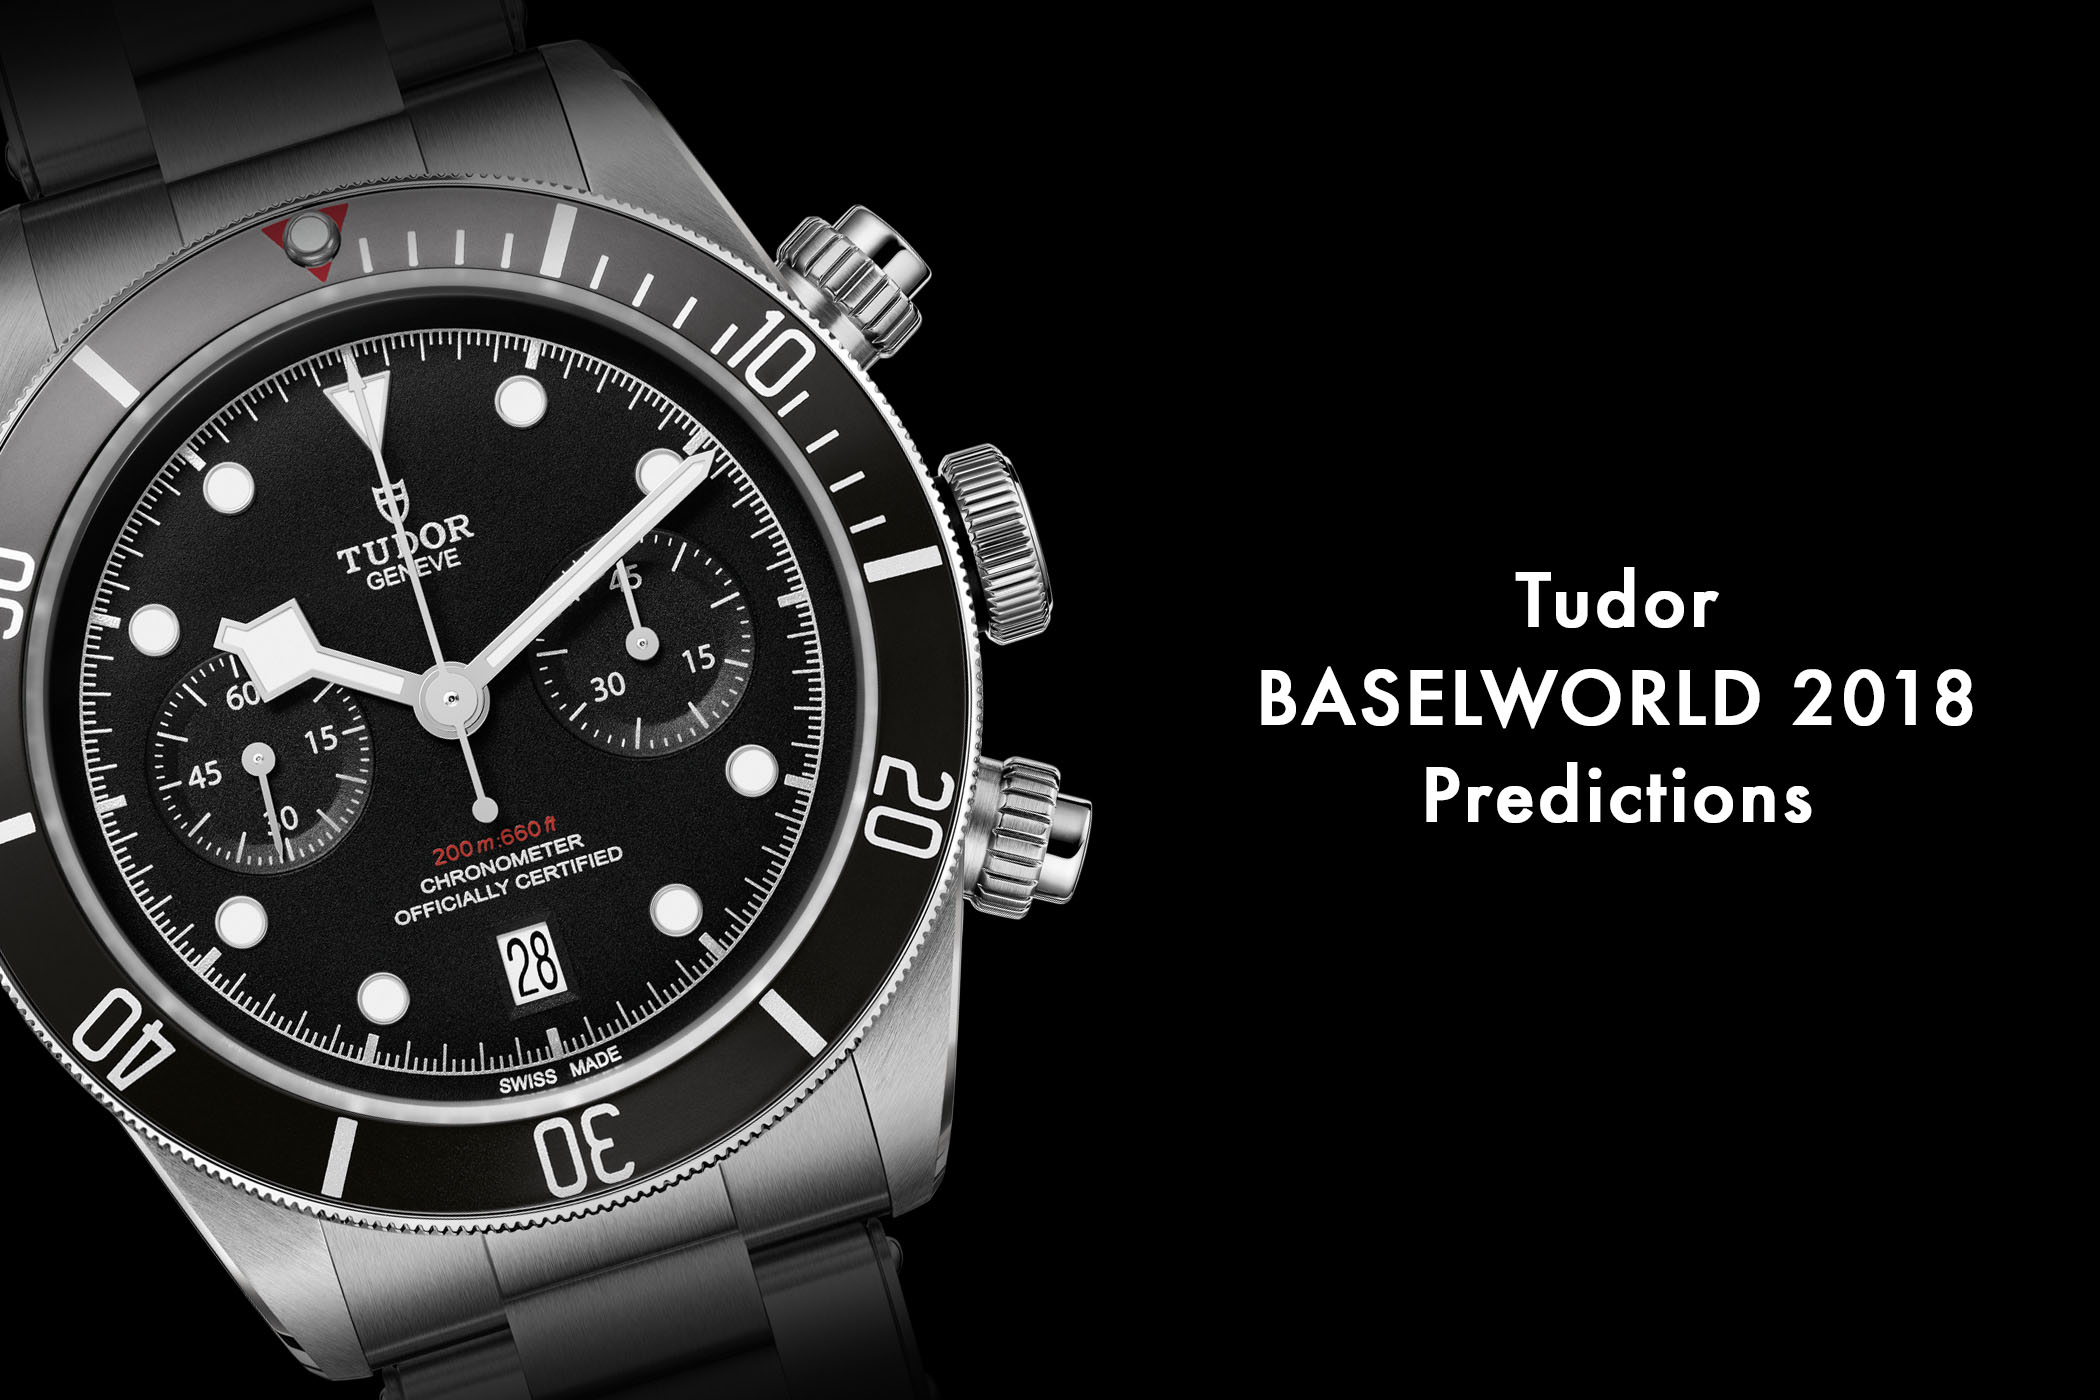 Tudor Baselworld 2018 - Tudor Predictions 2018 - Tudor Novelties 2018